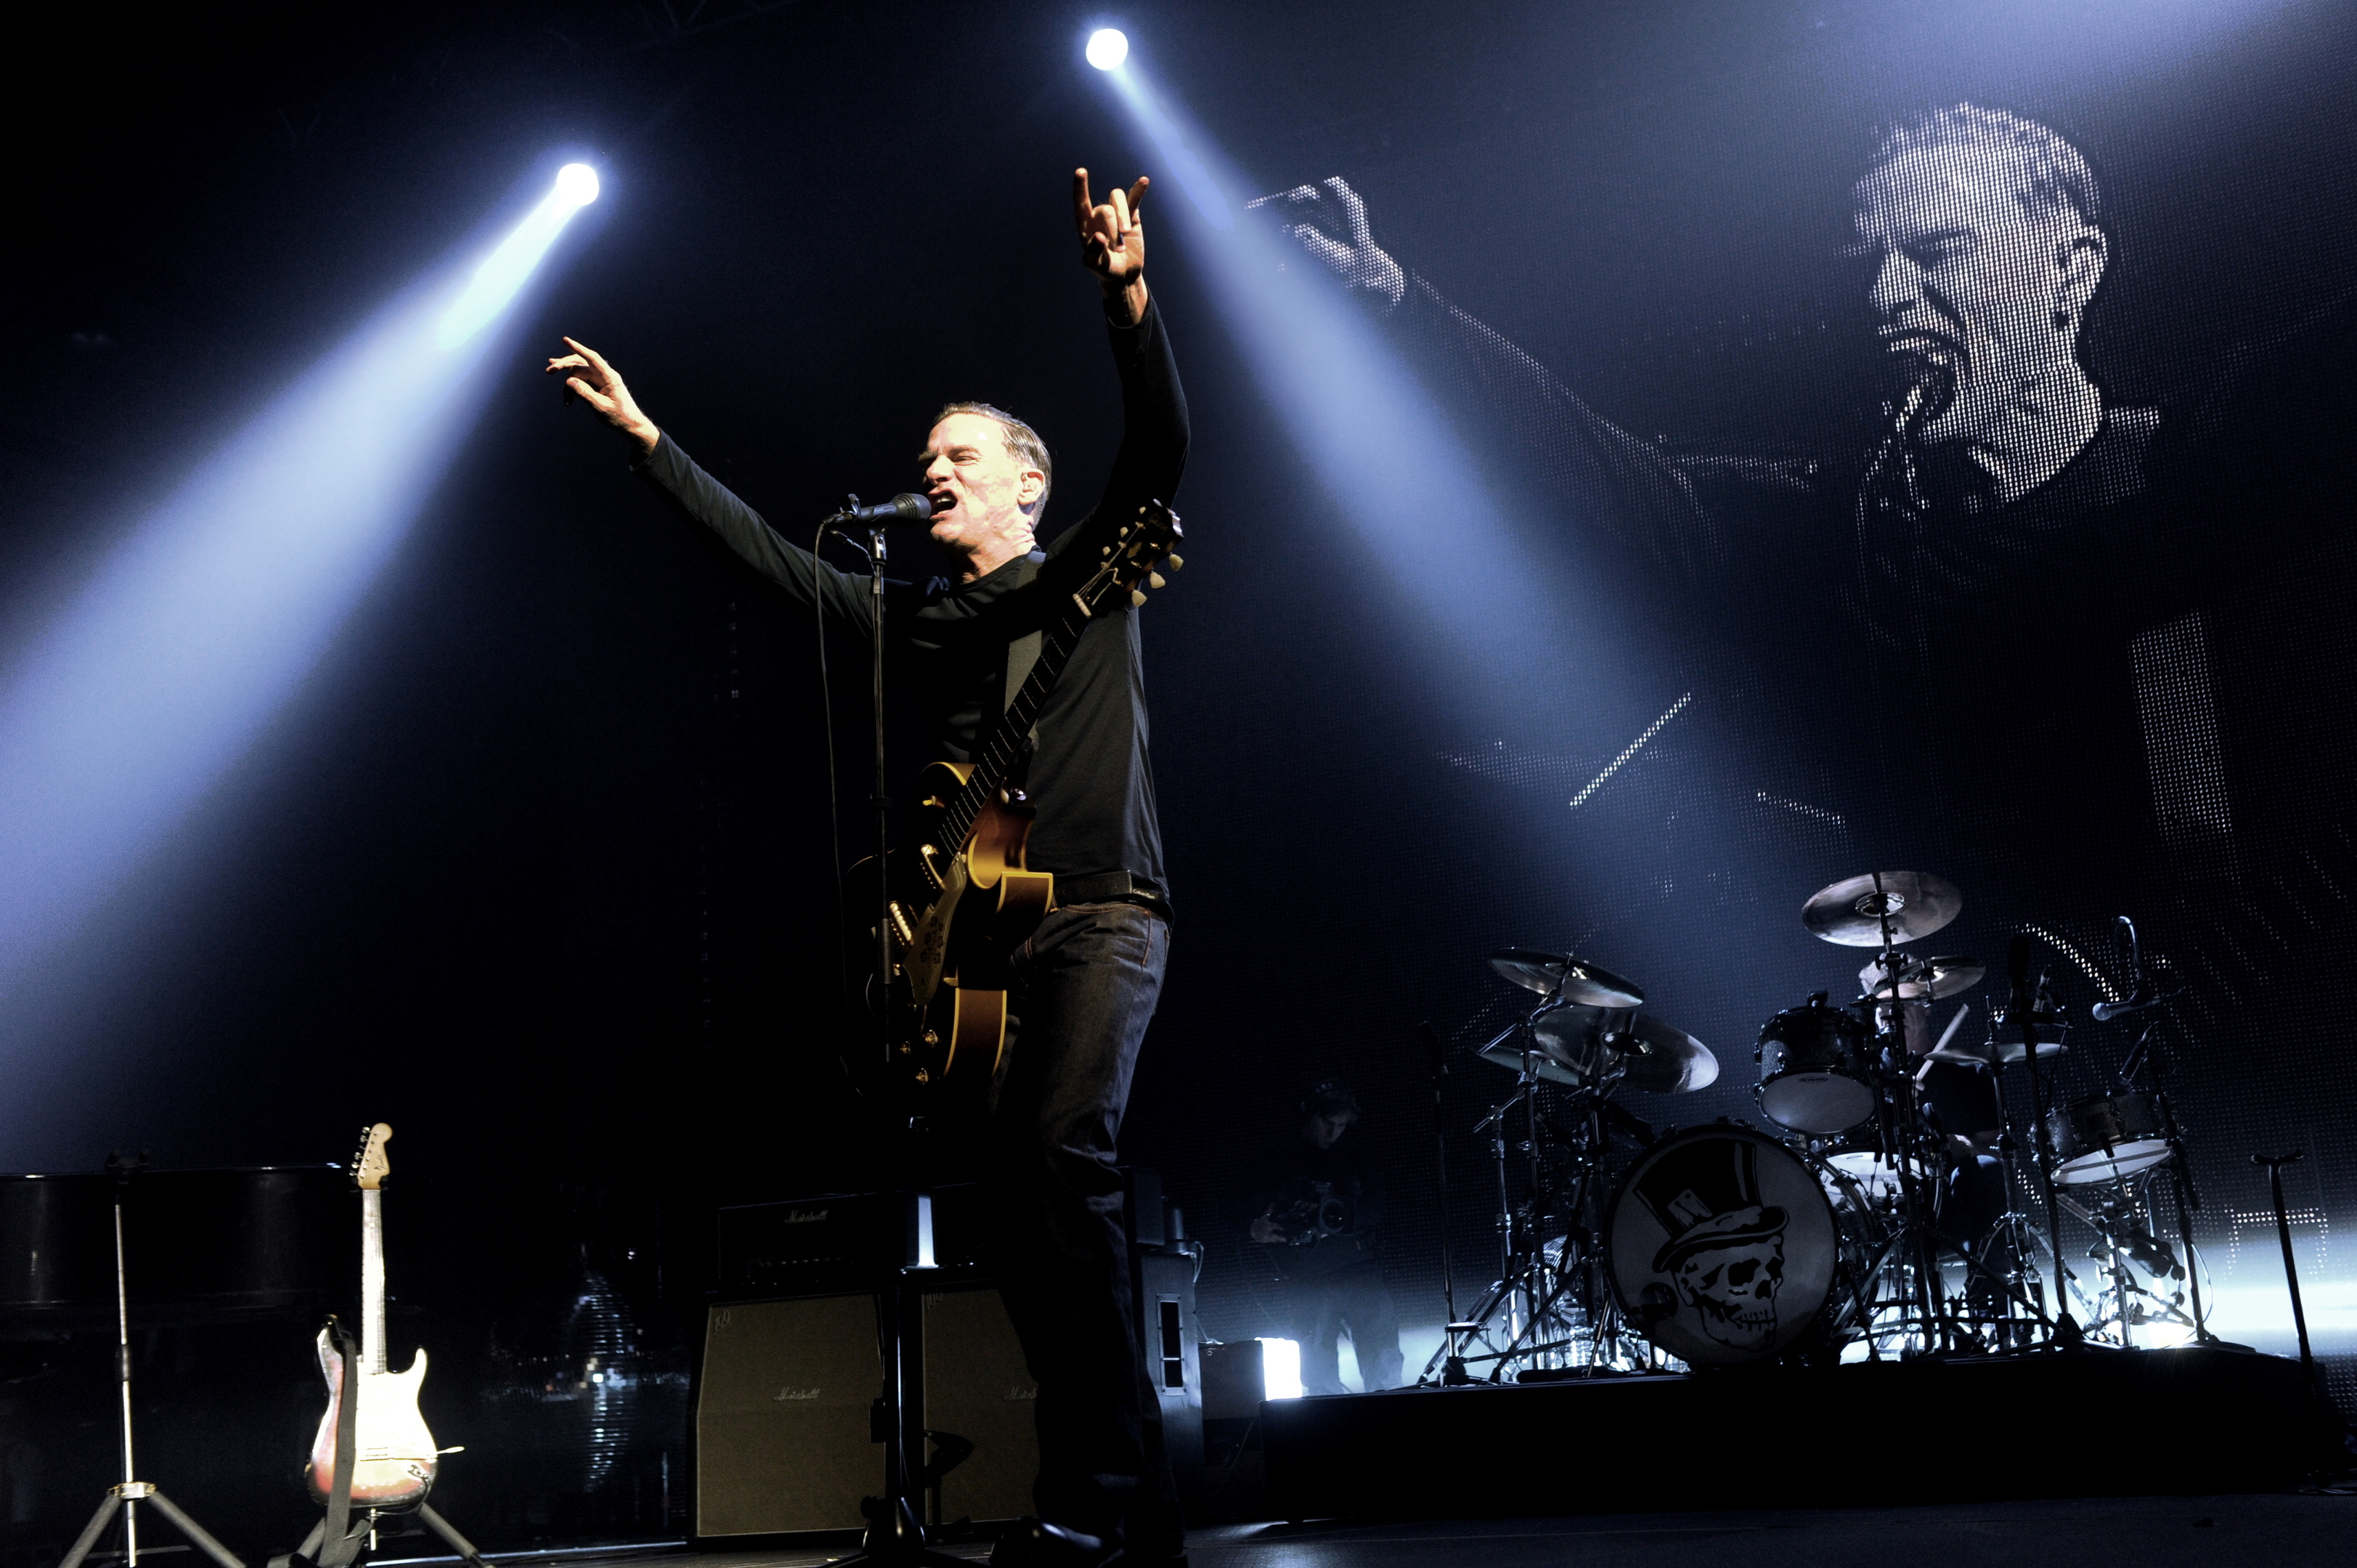 Entertainer: Bryan Adams